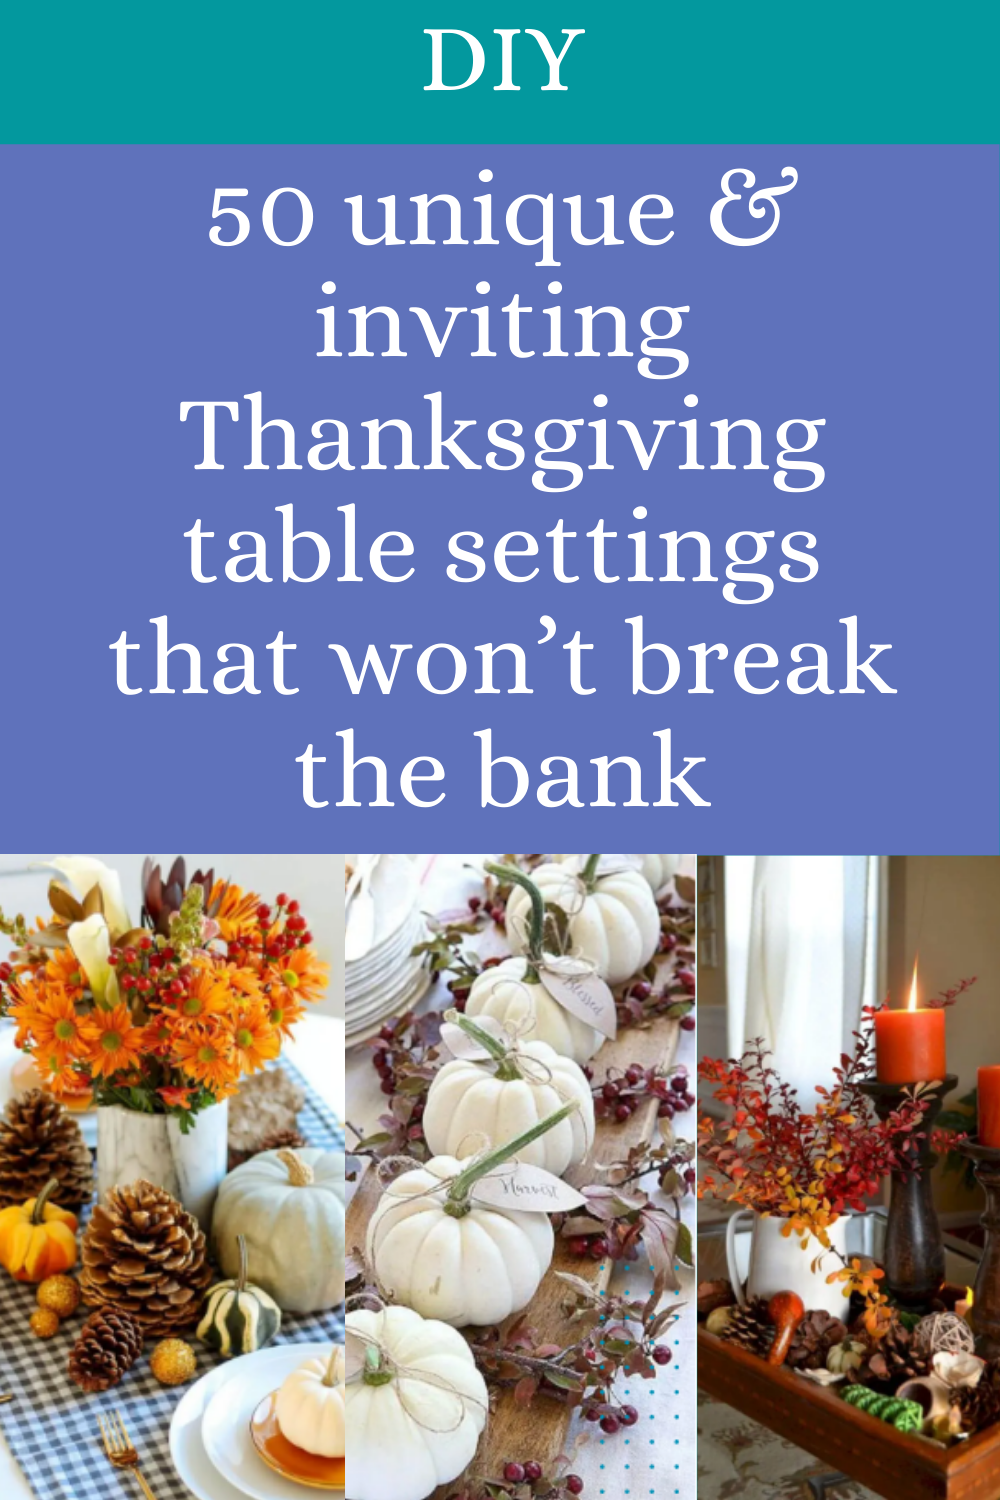 50 Unique Inviting Thanksgiving Table Settings That Won T Break The Bank In 2020 Unique Thanksgiving Table Thanksgiving Table Thanksgiving Table Settings